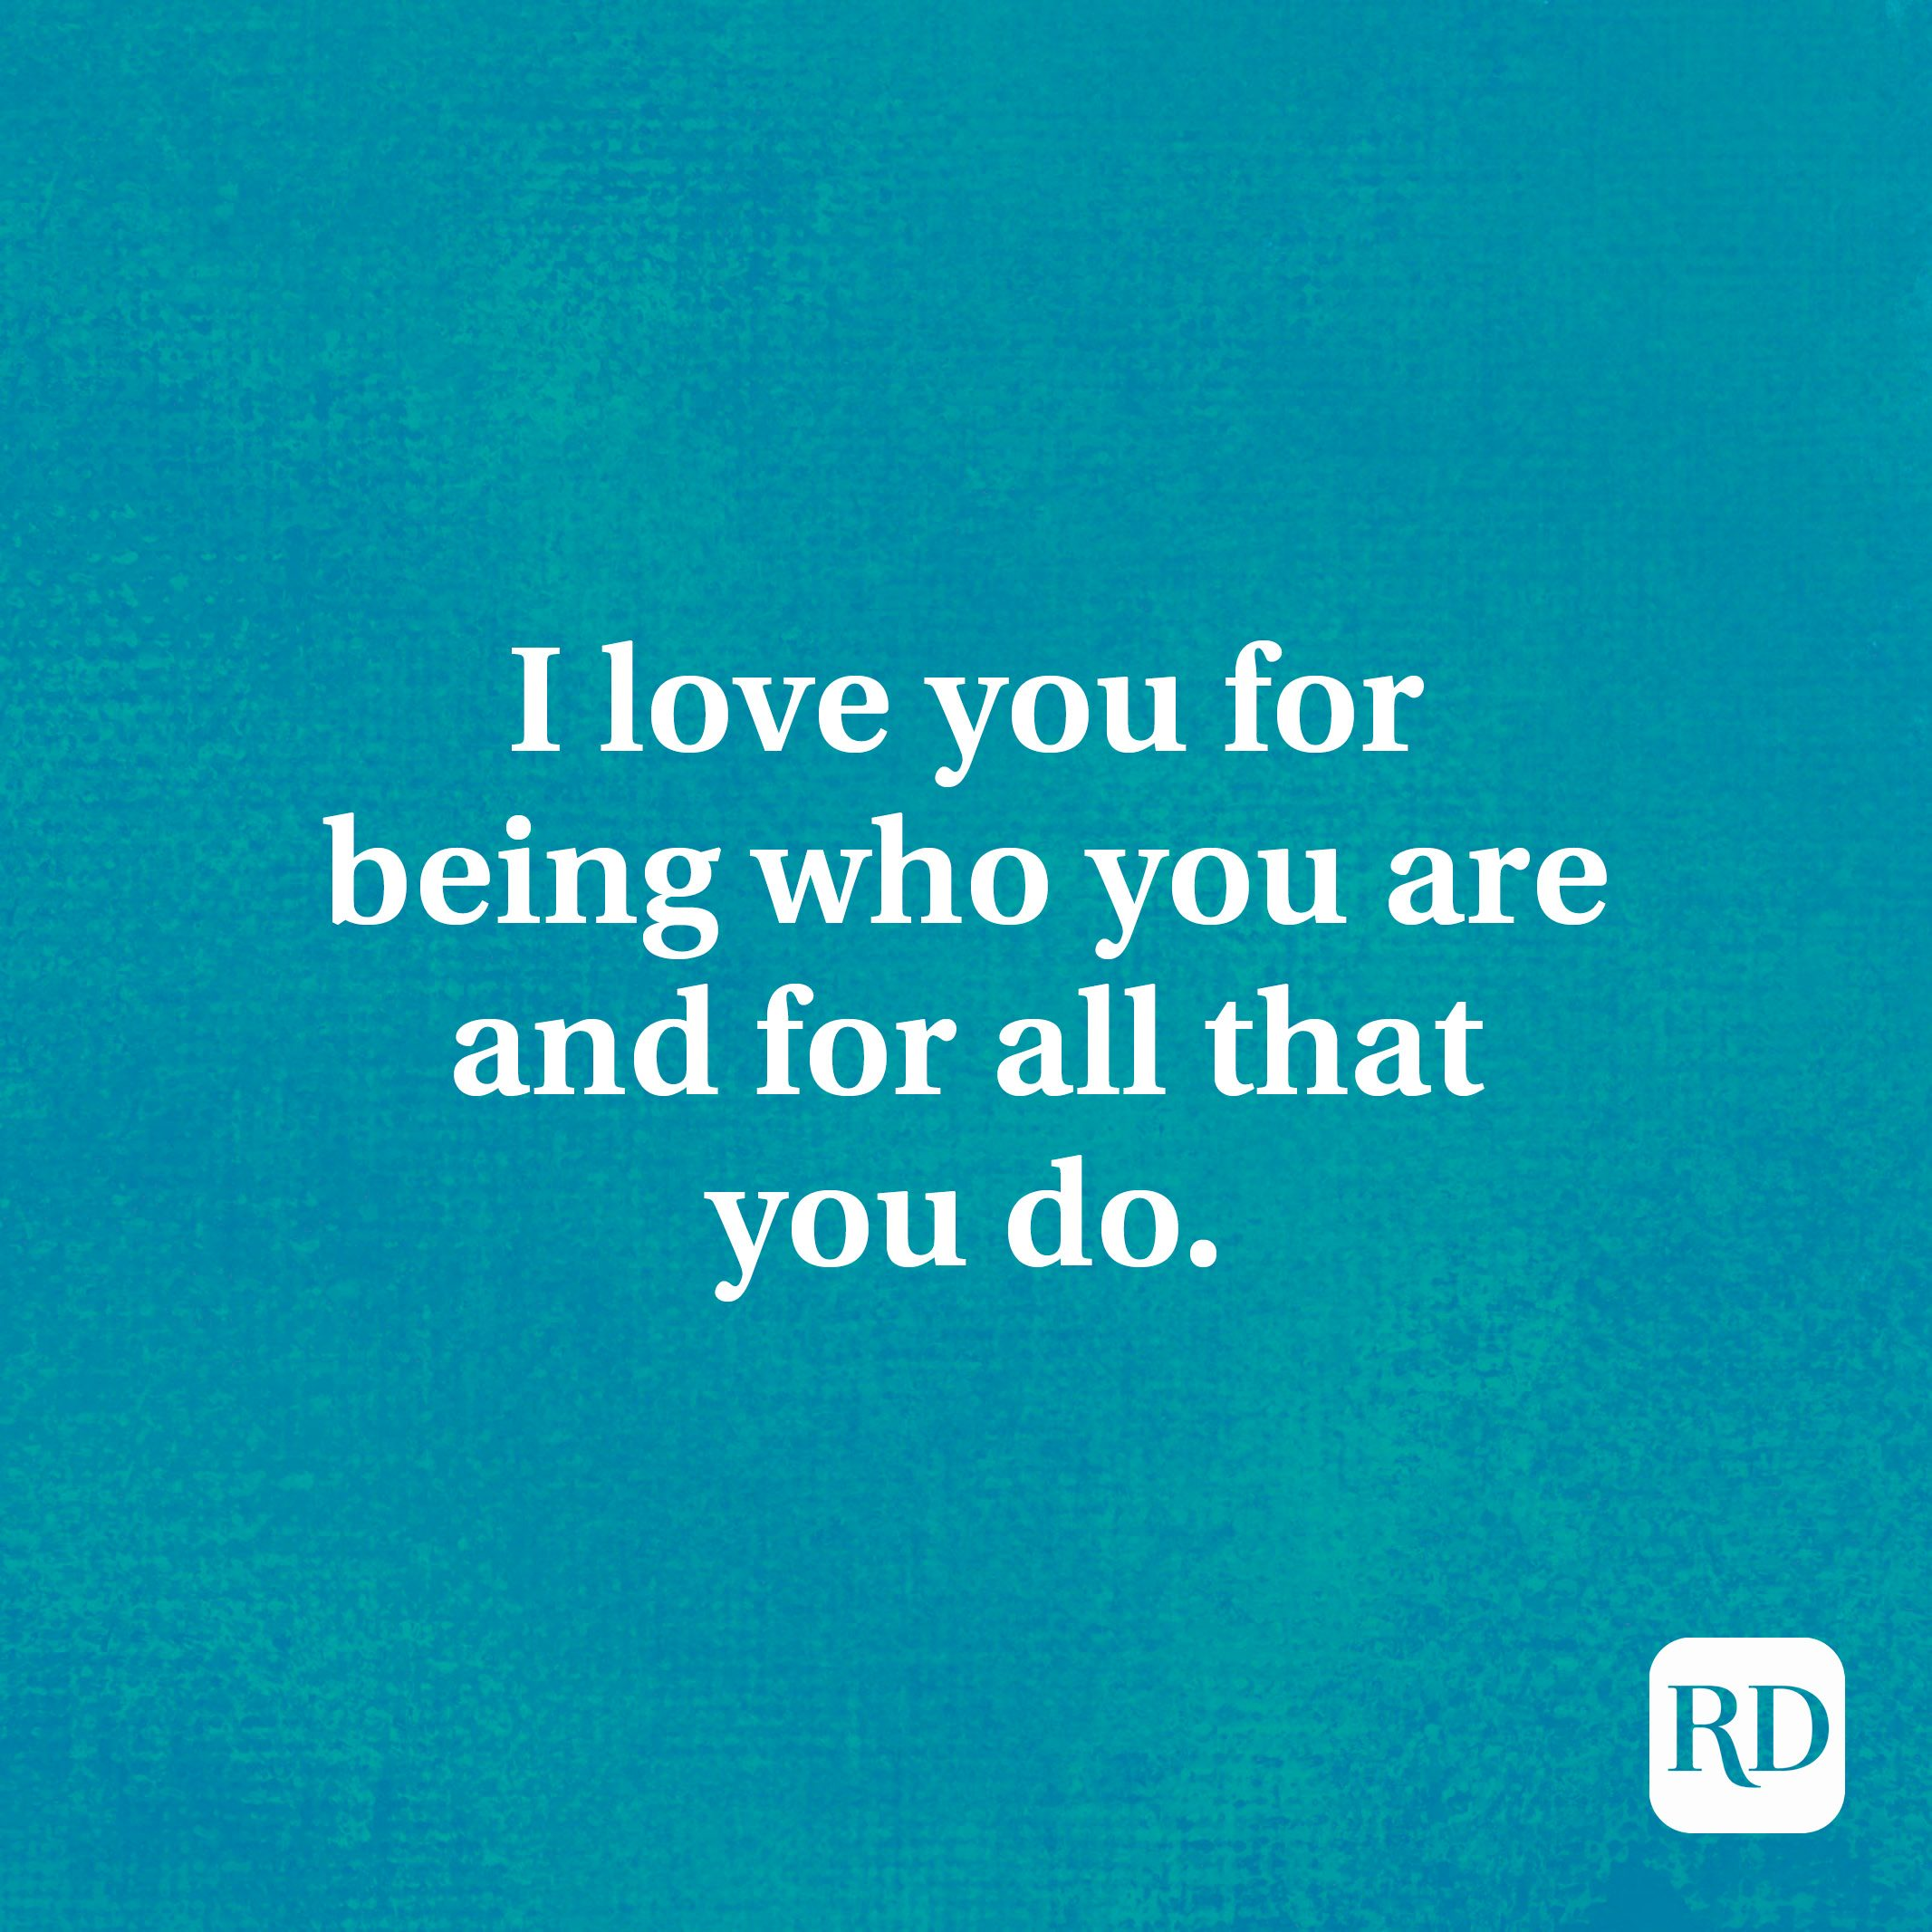 I love you for being who you are and for all that you do.